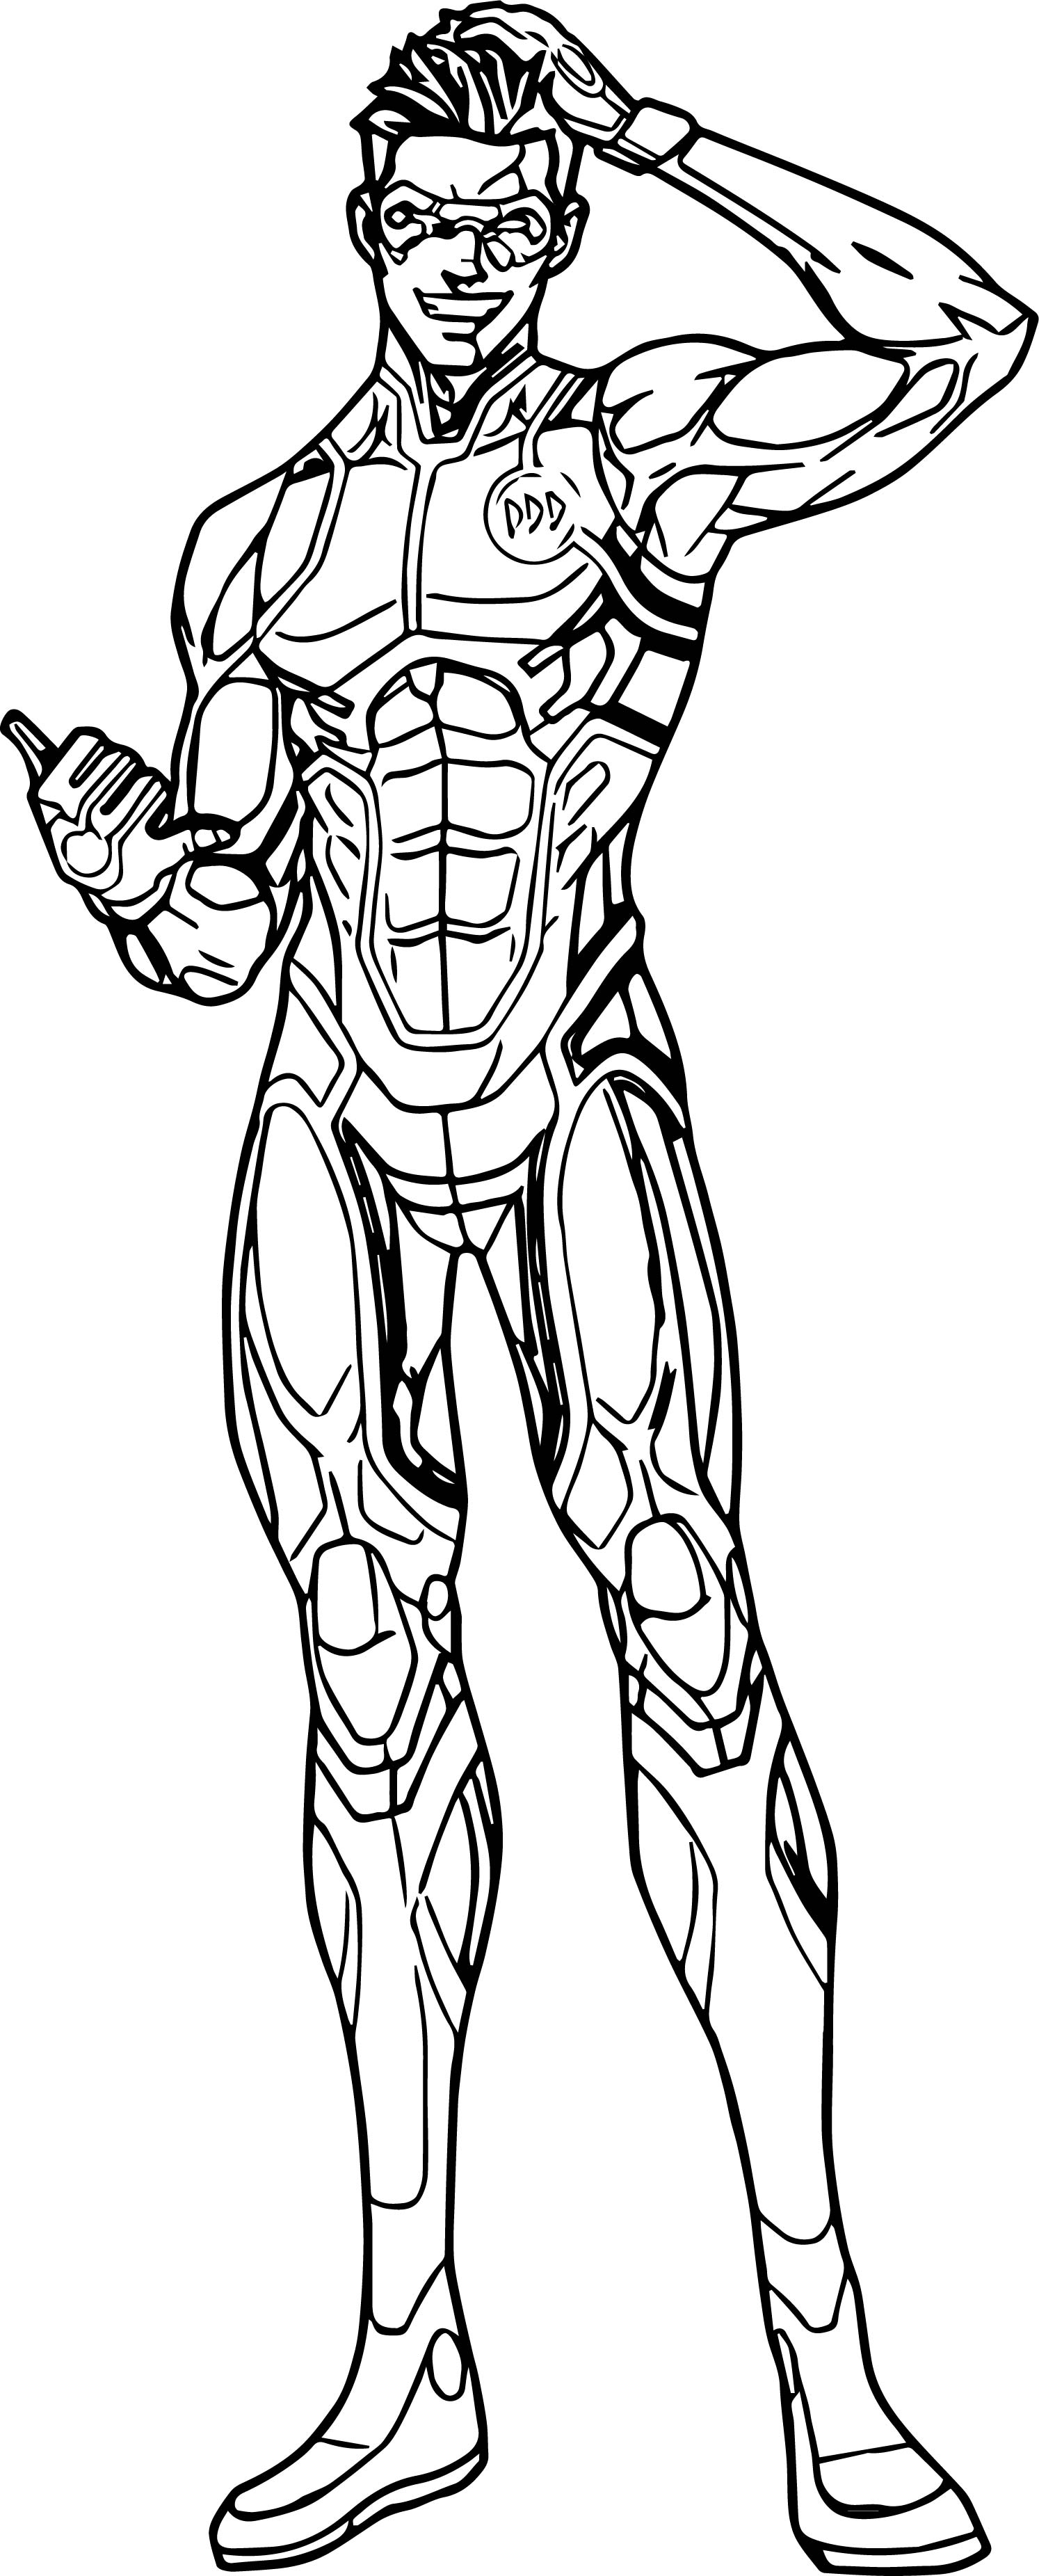 Characters Hero Man Coloring Page